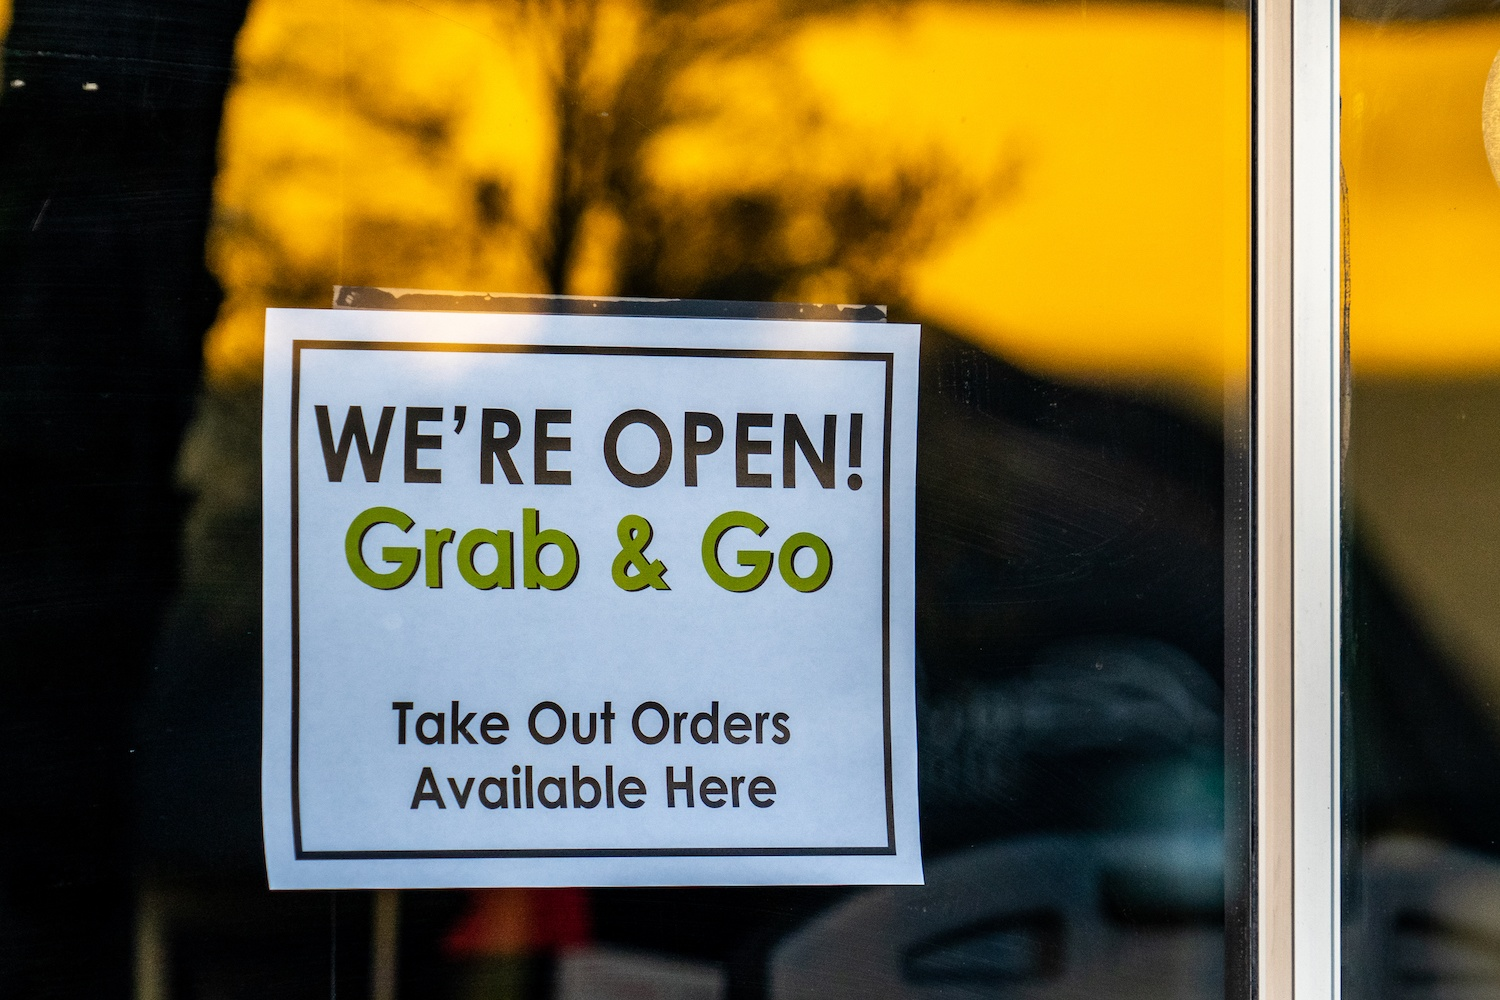 grab and go restaurant Everett, Washington covid-19 March 2020